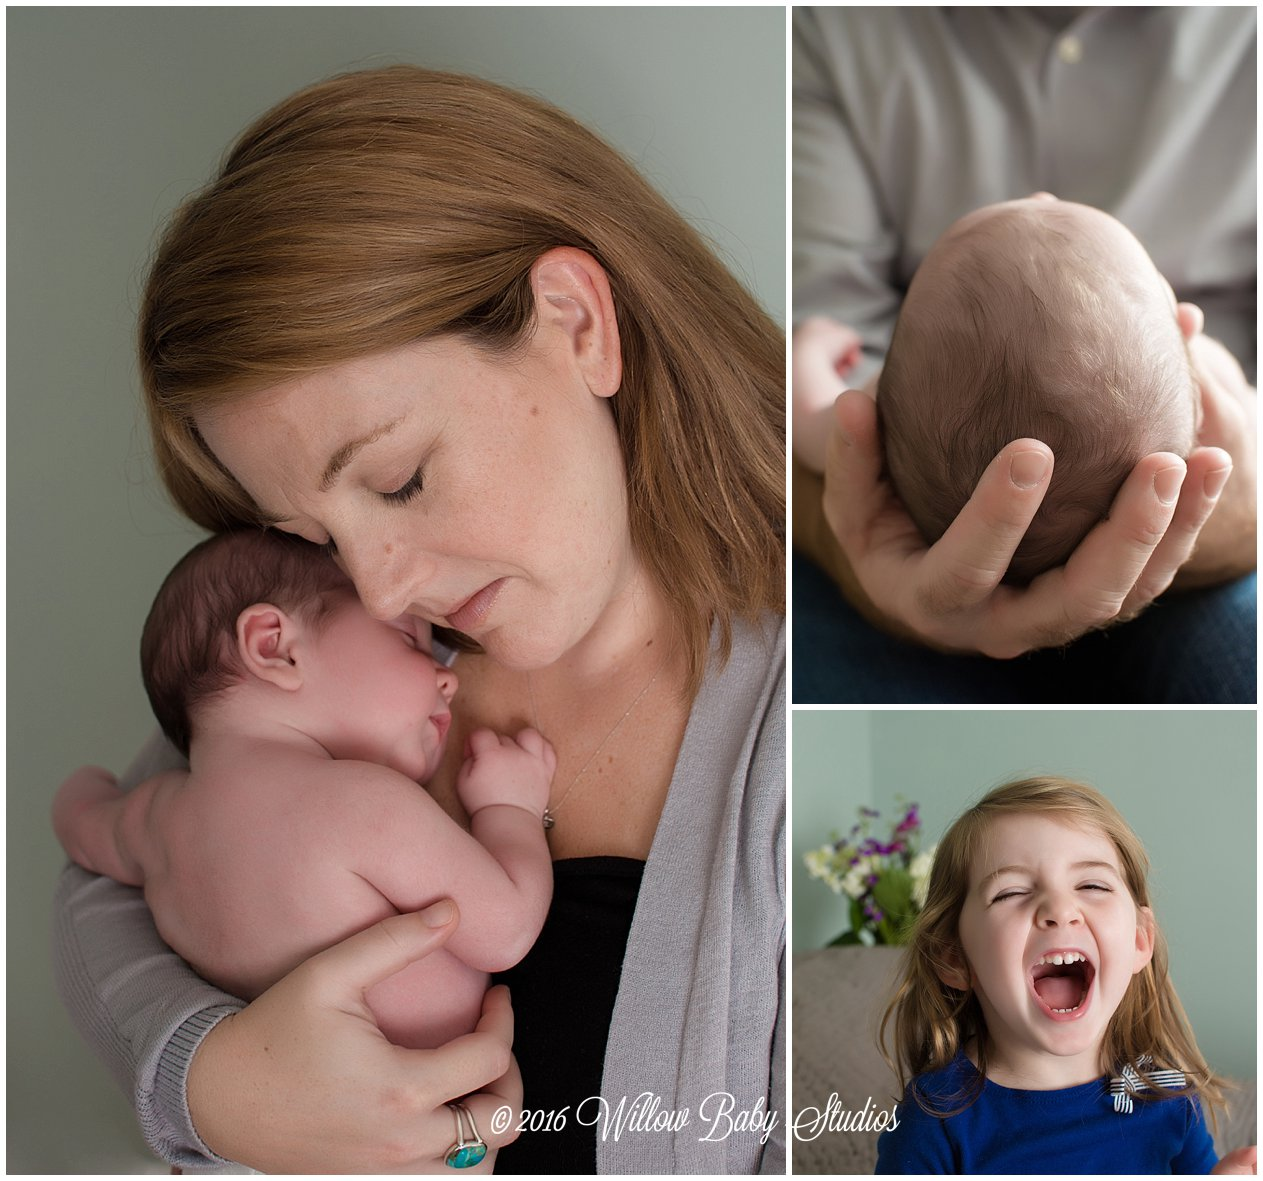 set of three photos - momma snuggling newborn son, daddy cradling his son, 3 year old yelling